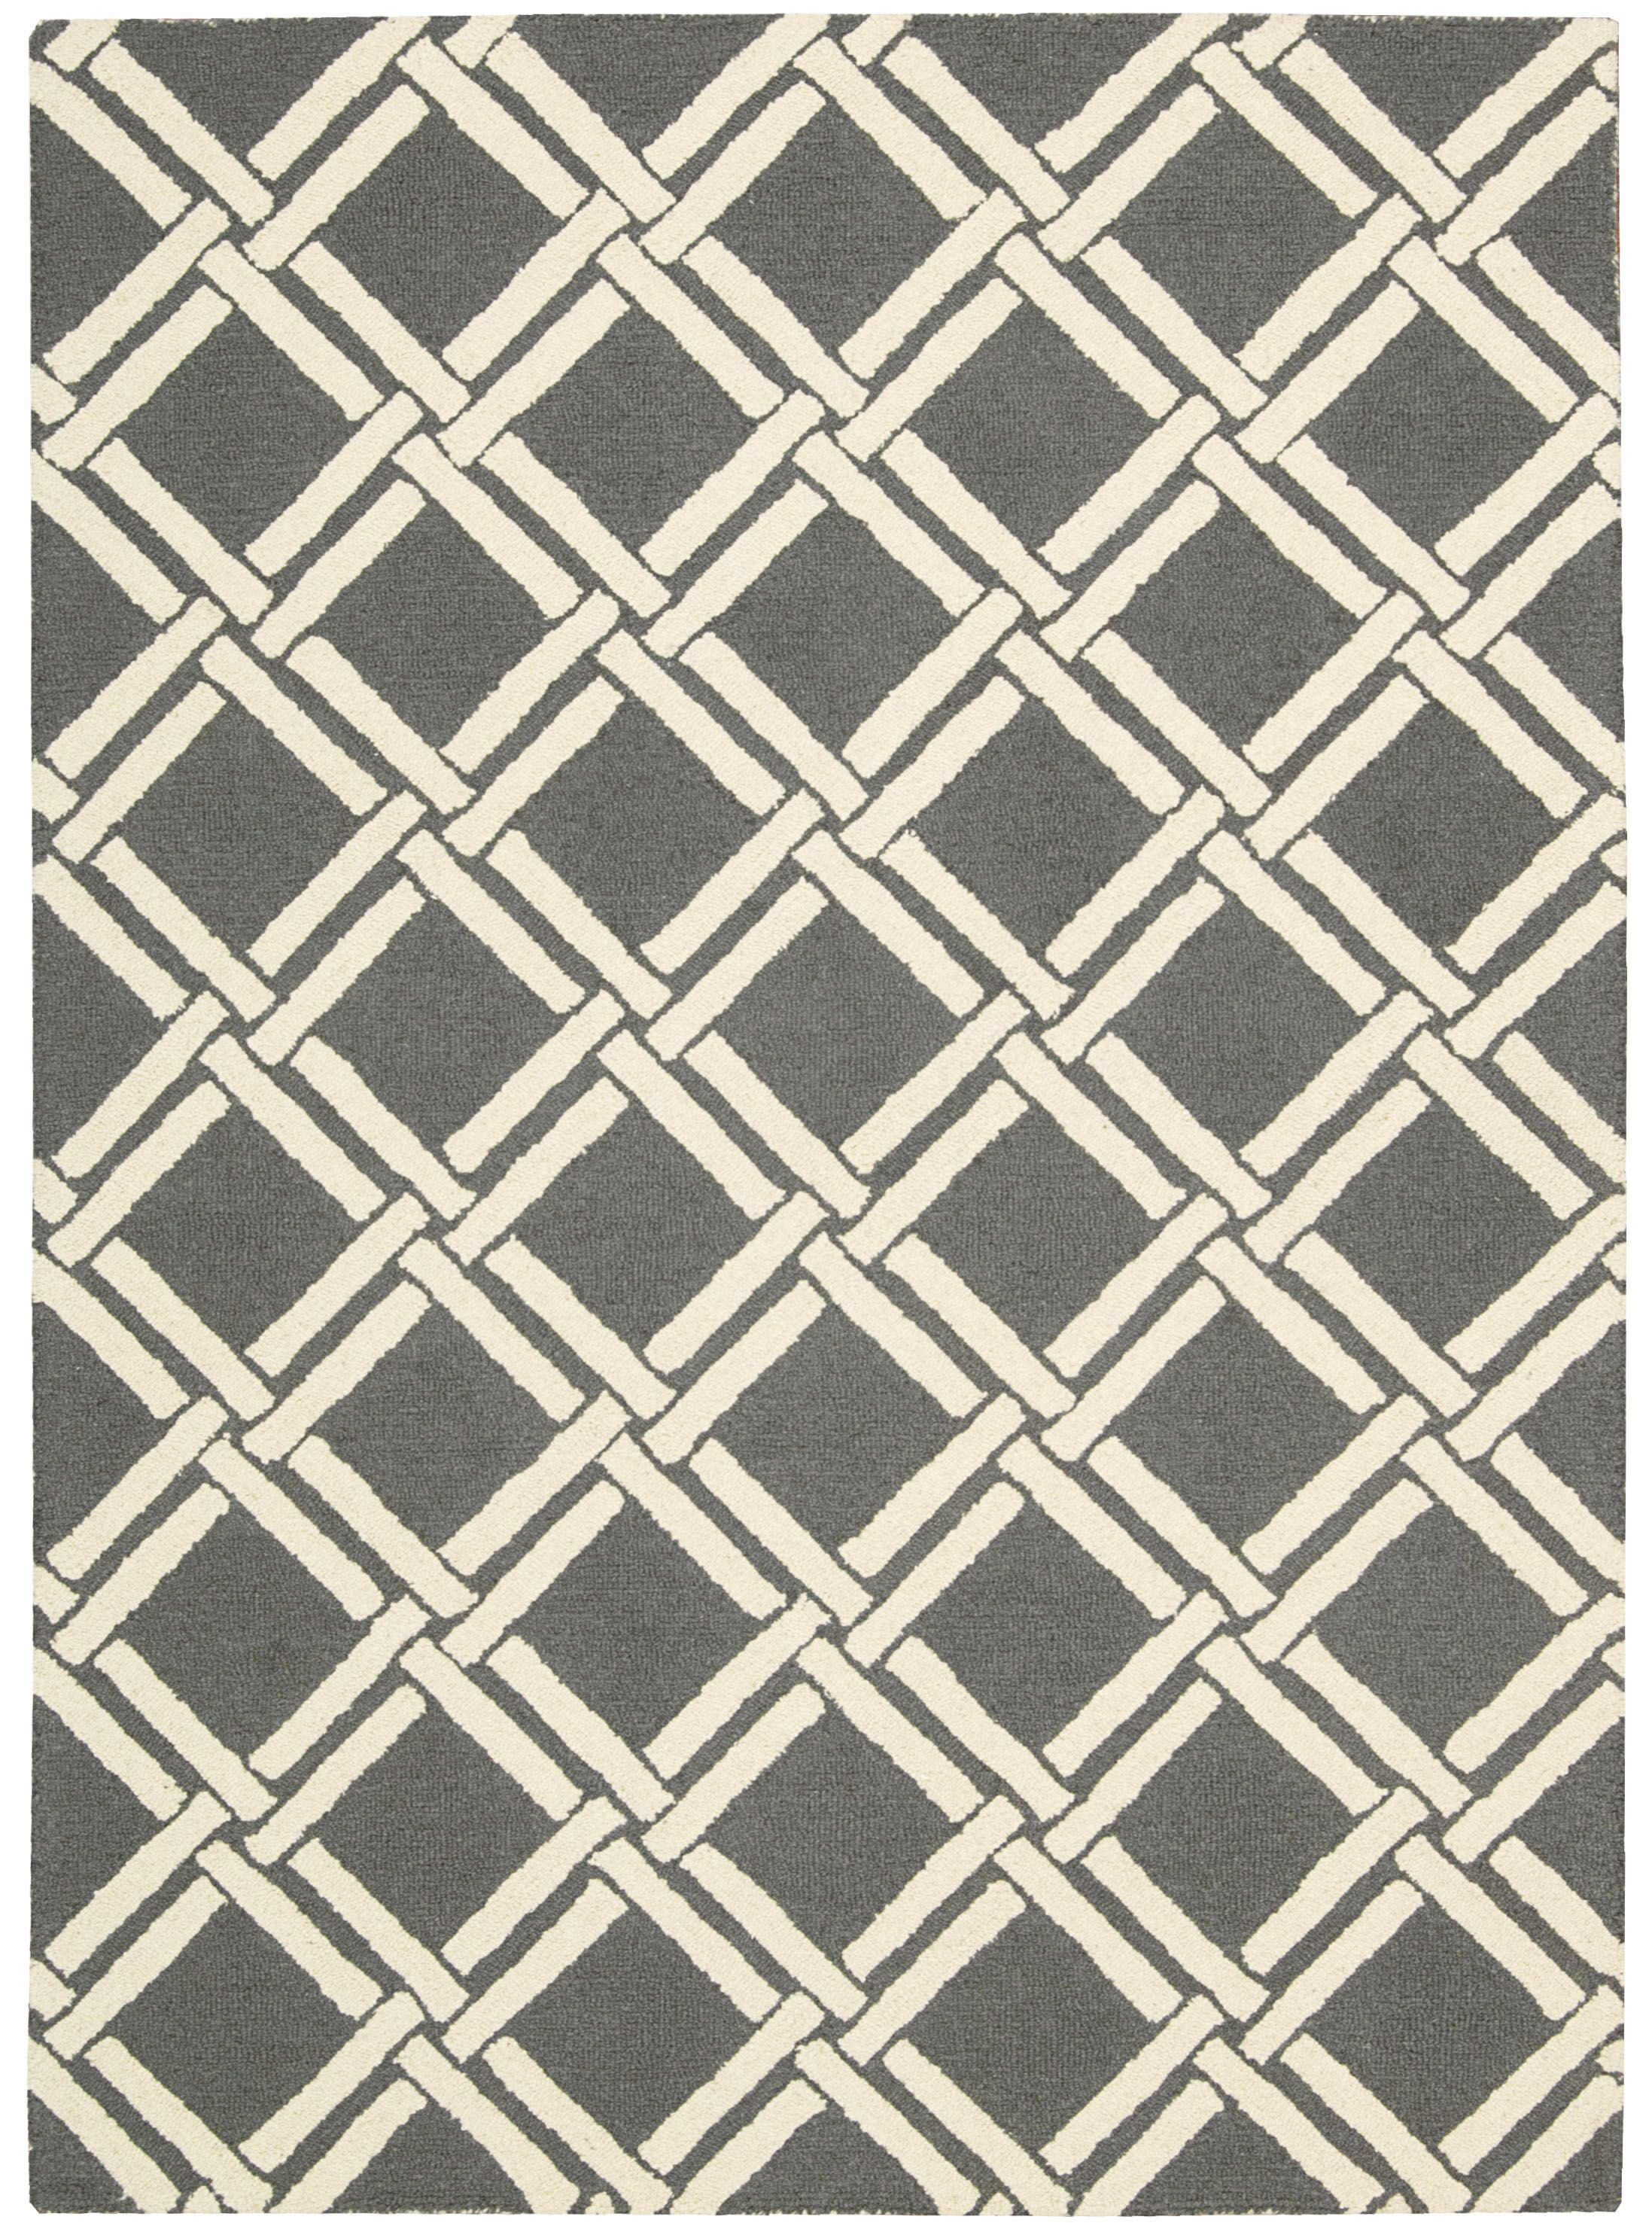 Hulings Hand-Knotted Gray/Ivory Area Rug Rug Size: Rectangle 3'9